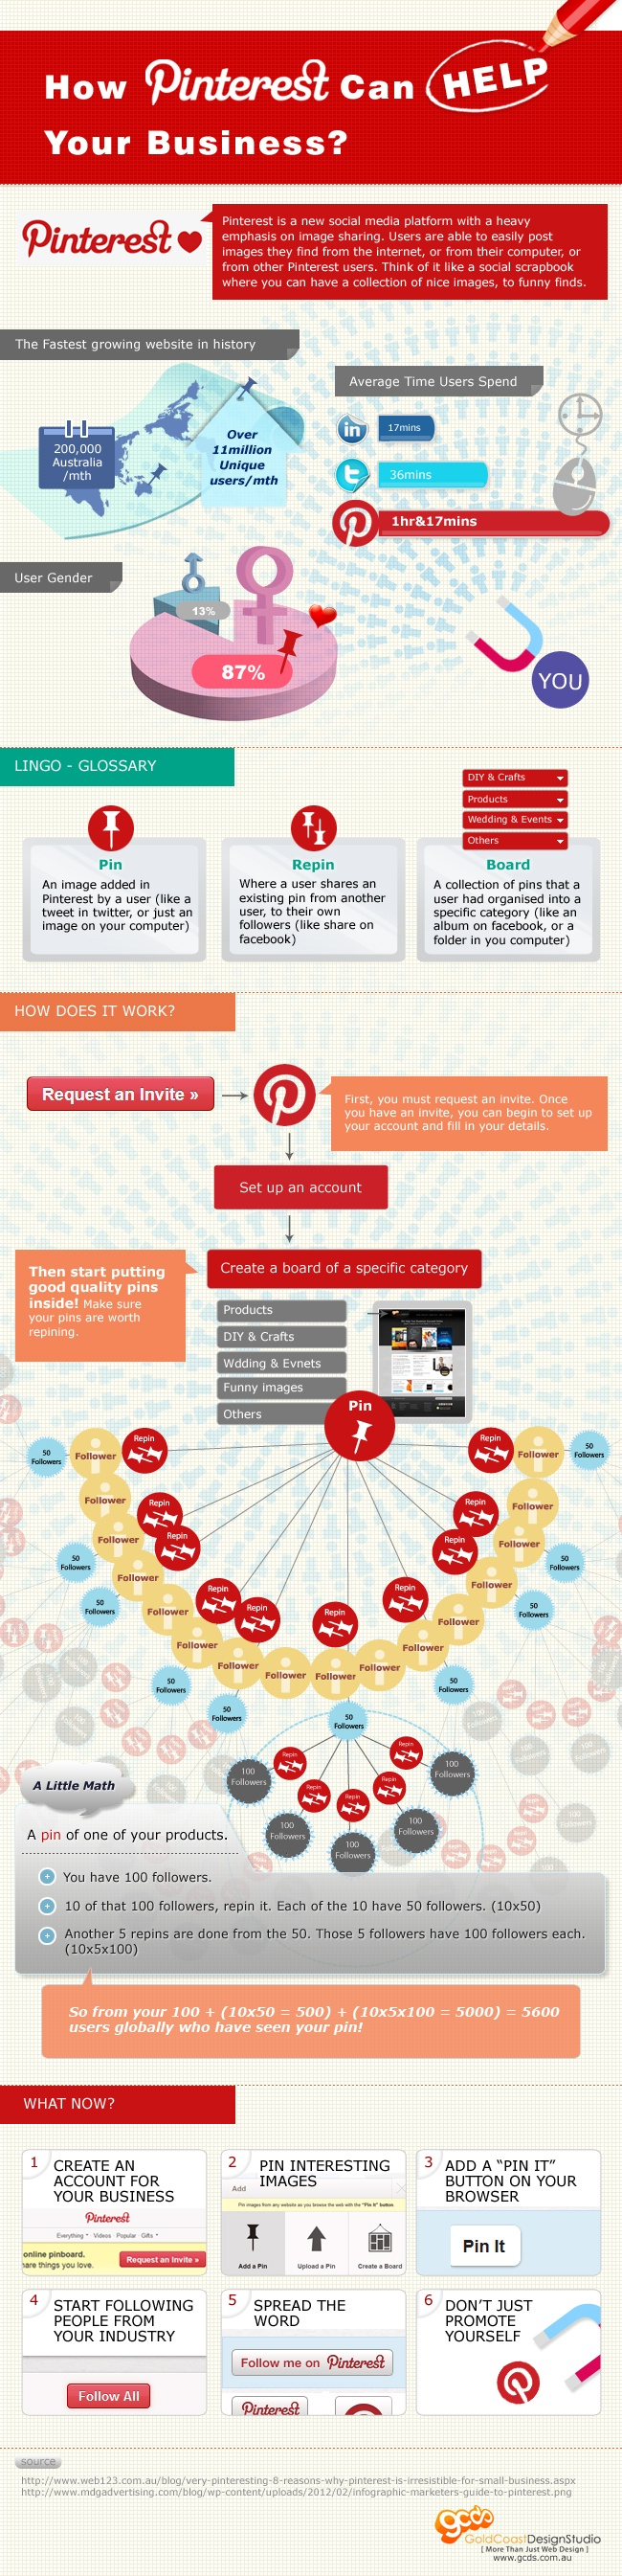 How Pinterest can Help Your Business